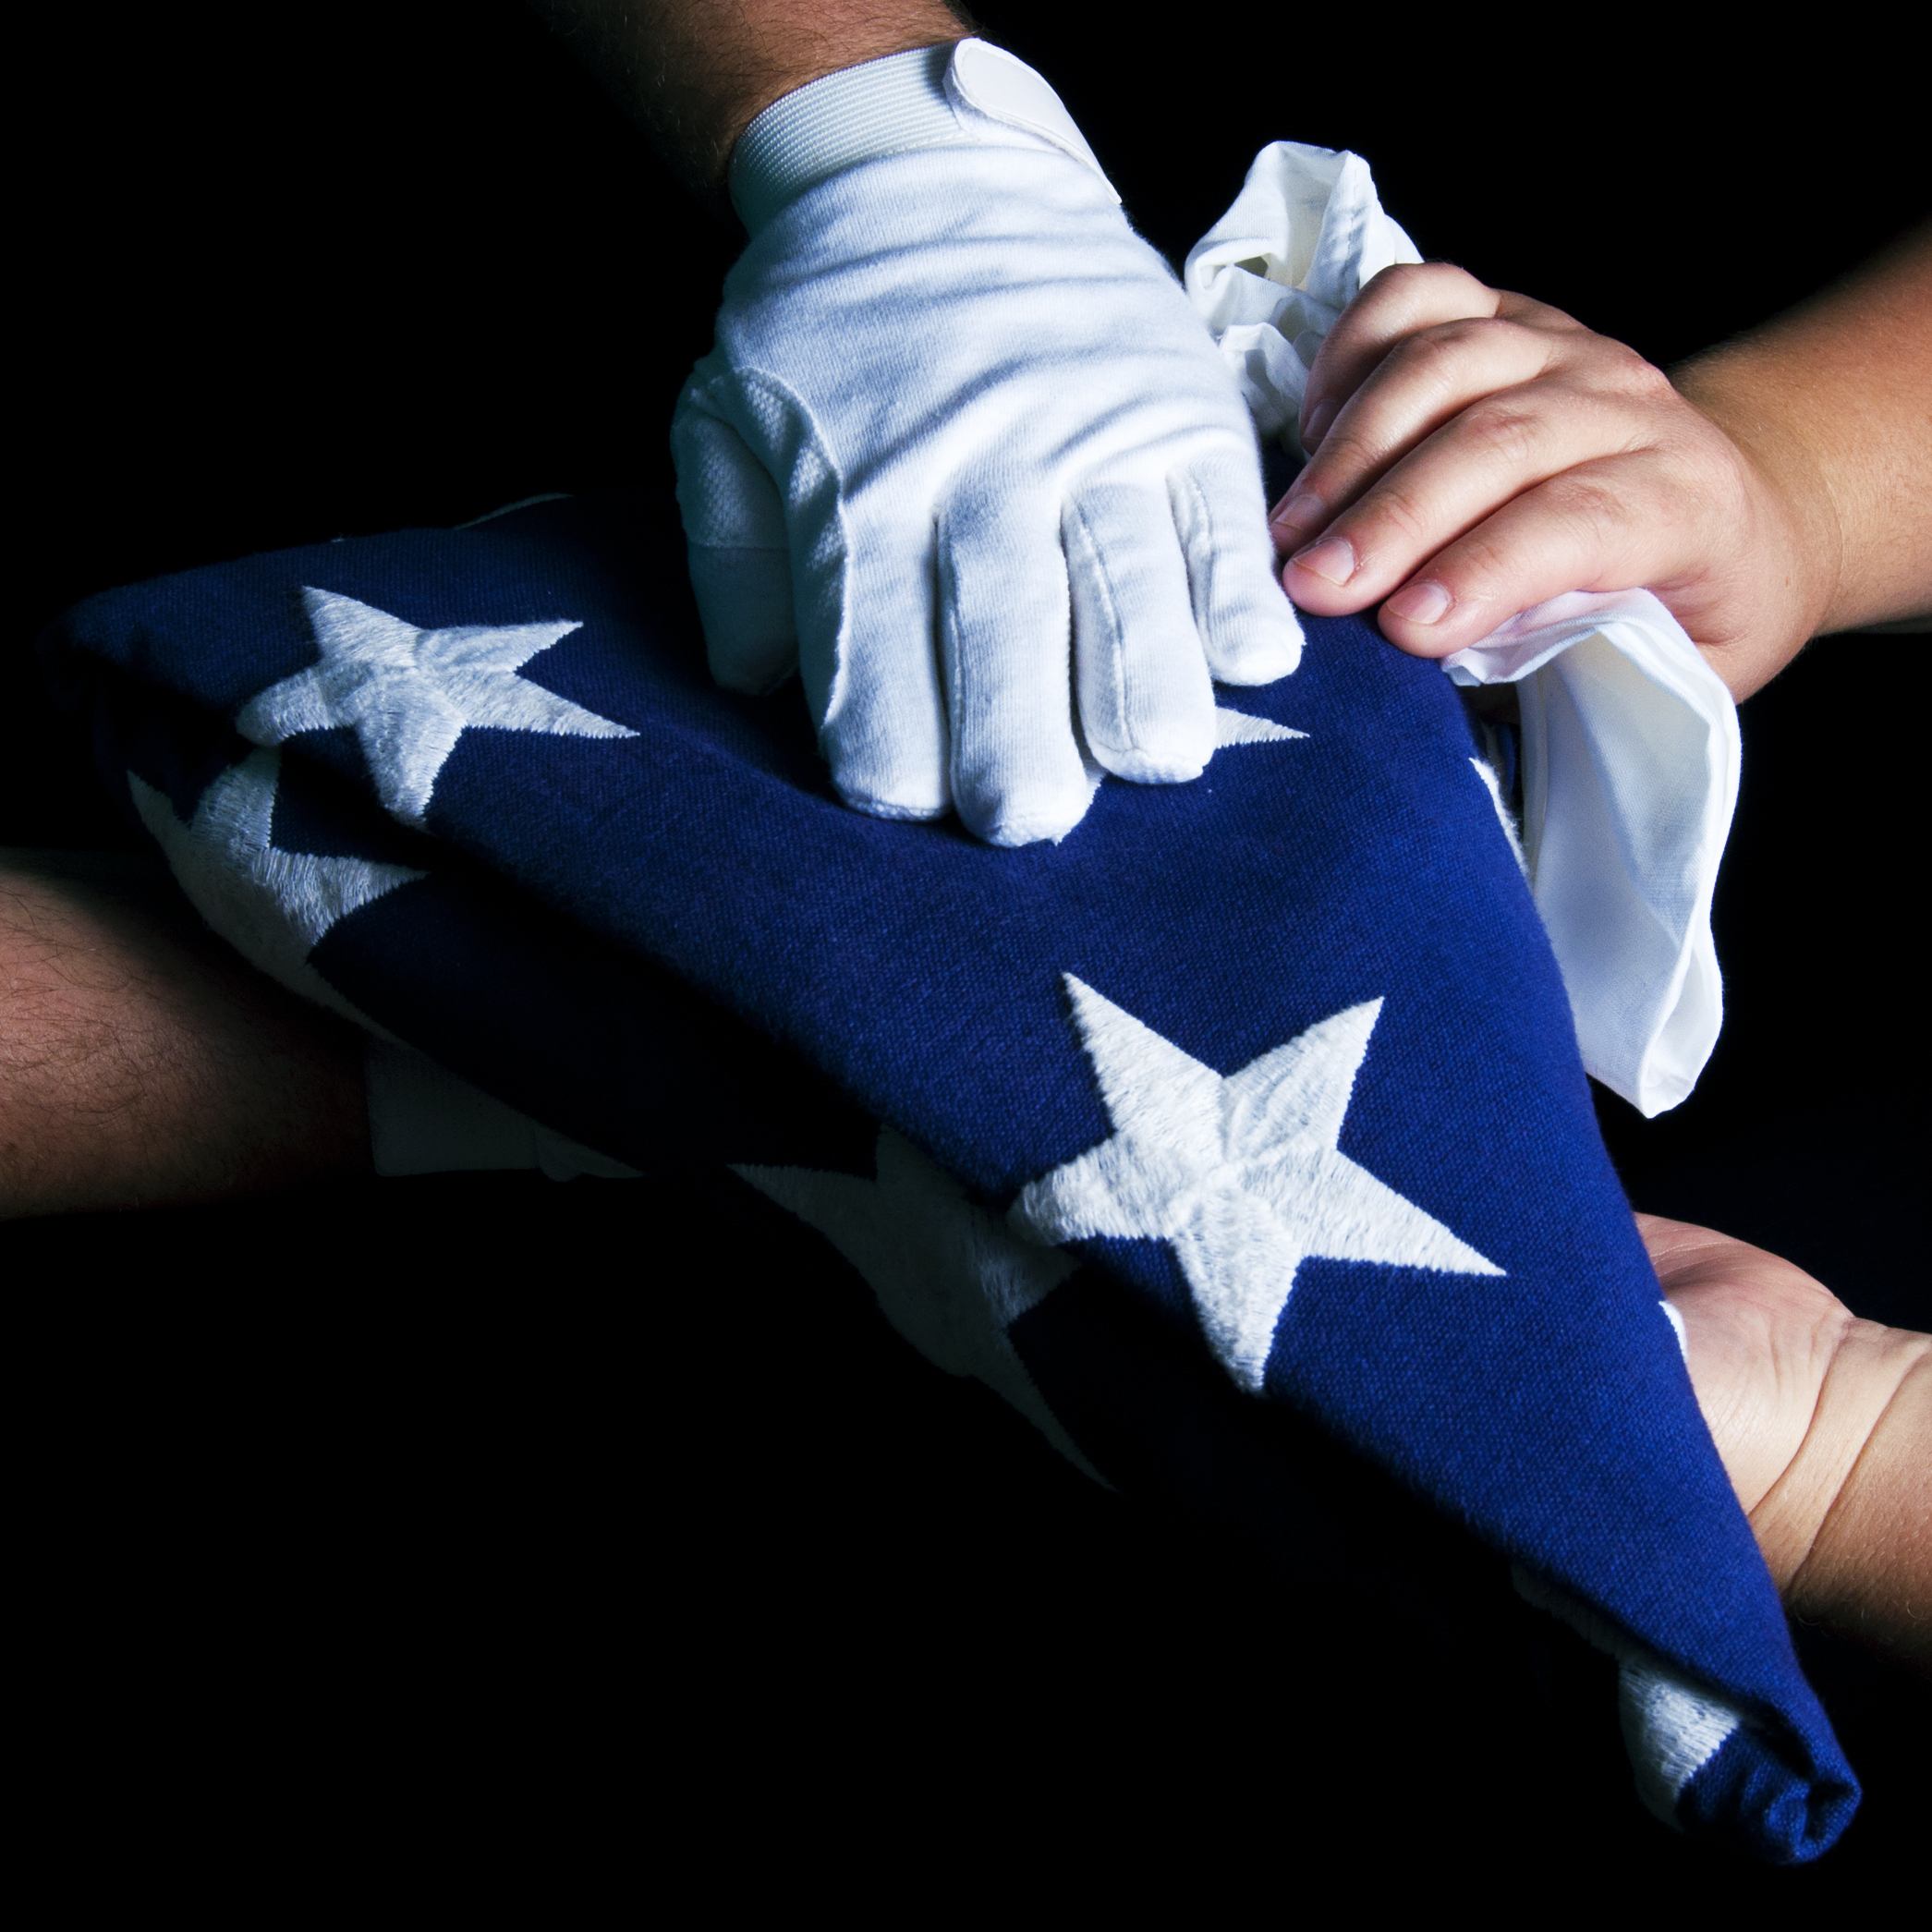 A white gloved hand presents a flag to a woman's hands (Crosby Photo/Shutterstock)